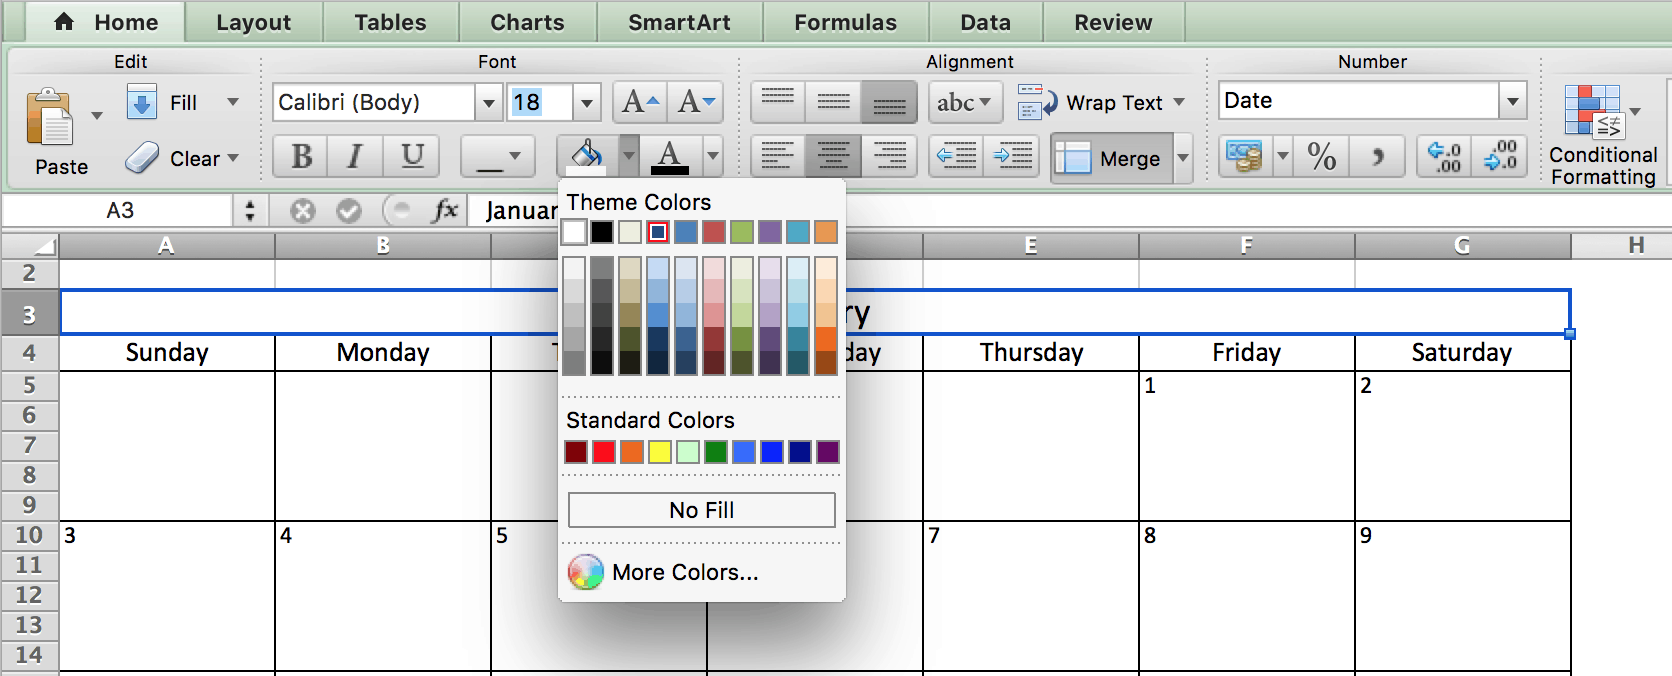 Ediblewildsus  Pretty Make A  Calendar In Excel Includes Free Template With Remarkable Choosing Colors  Calendar In Excel With Divine Excel Ifna Also Add Secondary Axis Excel In Addition Microsoft Excel For Android And How To Unprotect Excel As Well As Subtract Dates In Excel Additionally Change Chart Style In Excel From Smartsheetcom With Ediblewildsus  Remarkable Make A  Calendar In Excel Includes Free Template With Divine Choosing Colors  Calendar In Excel And Pretty Excel Ifna Also Add Secondary Axis Excel In Addition Microsoft Excel For Android From Smartsheetcom